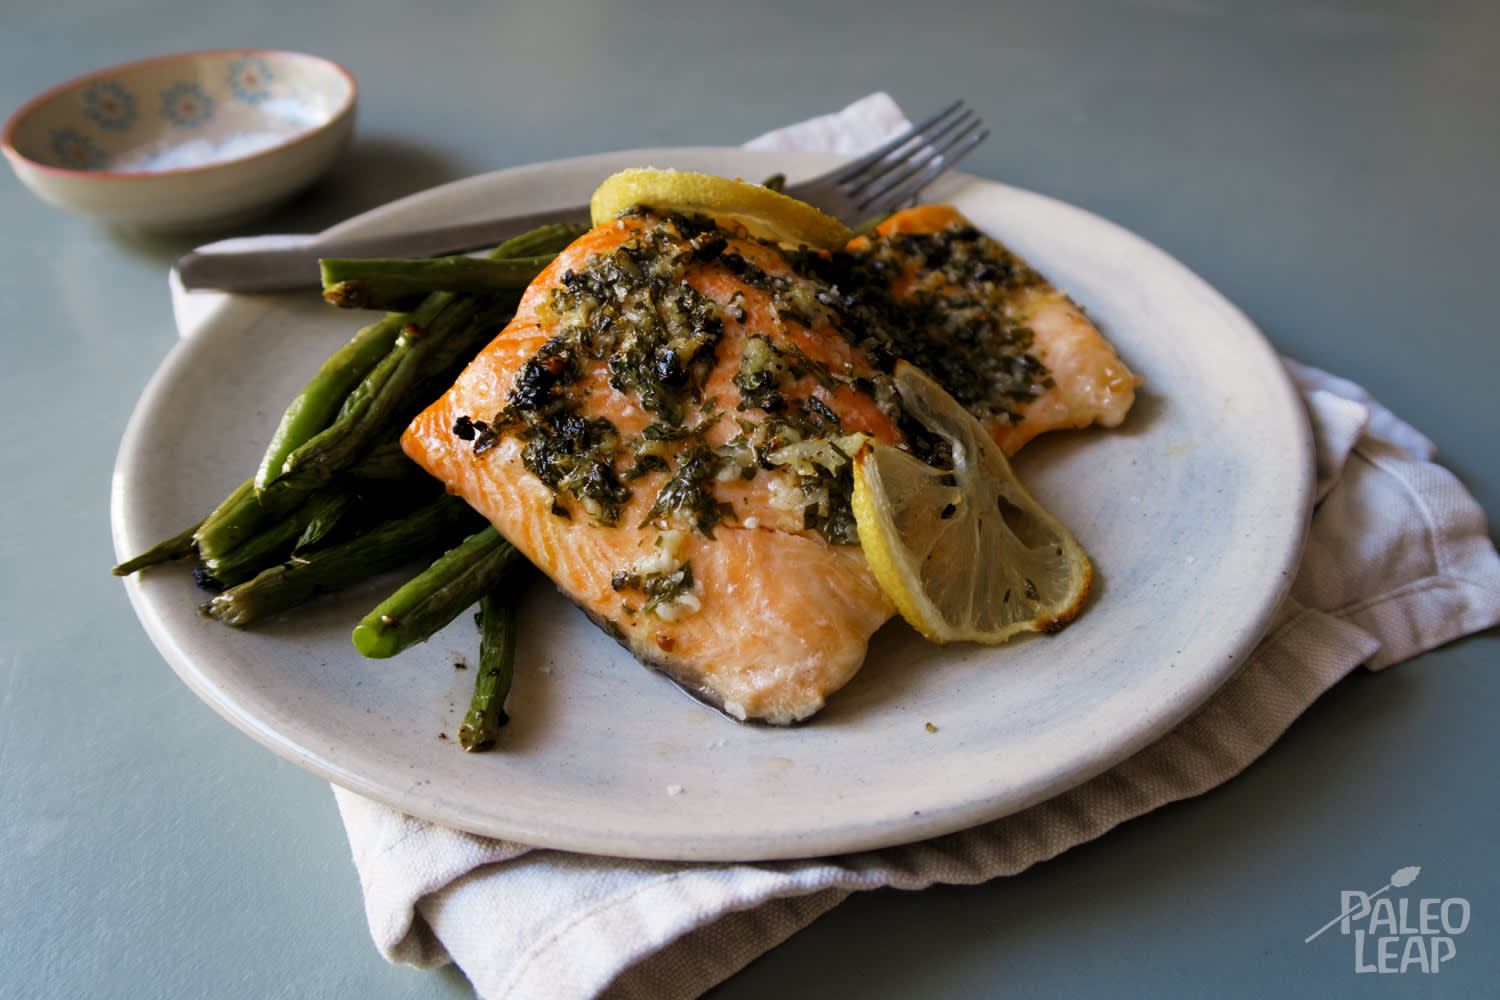 Lemon-Garlic Baked Salmon